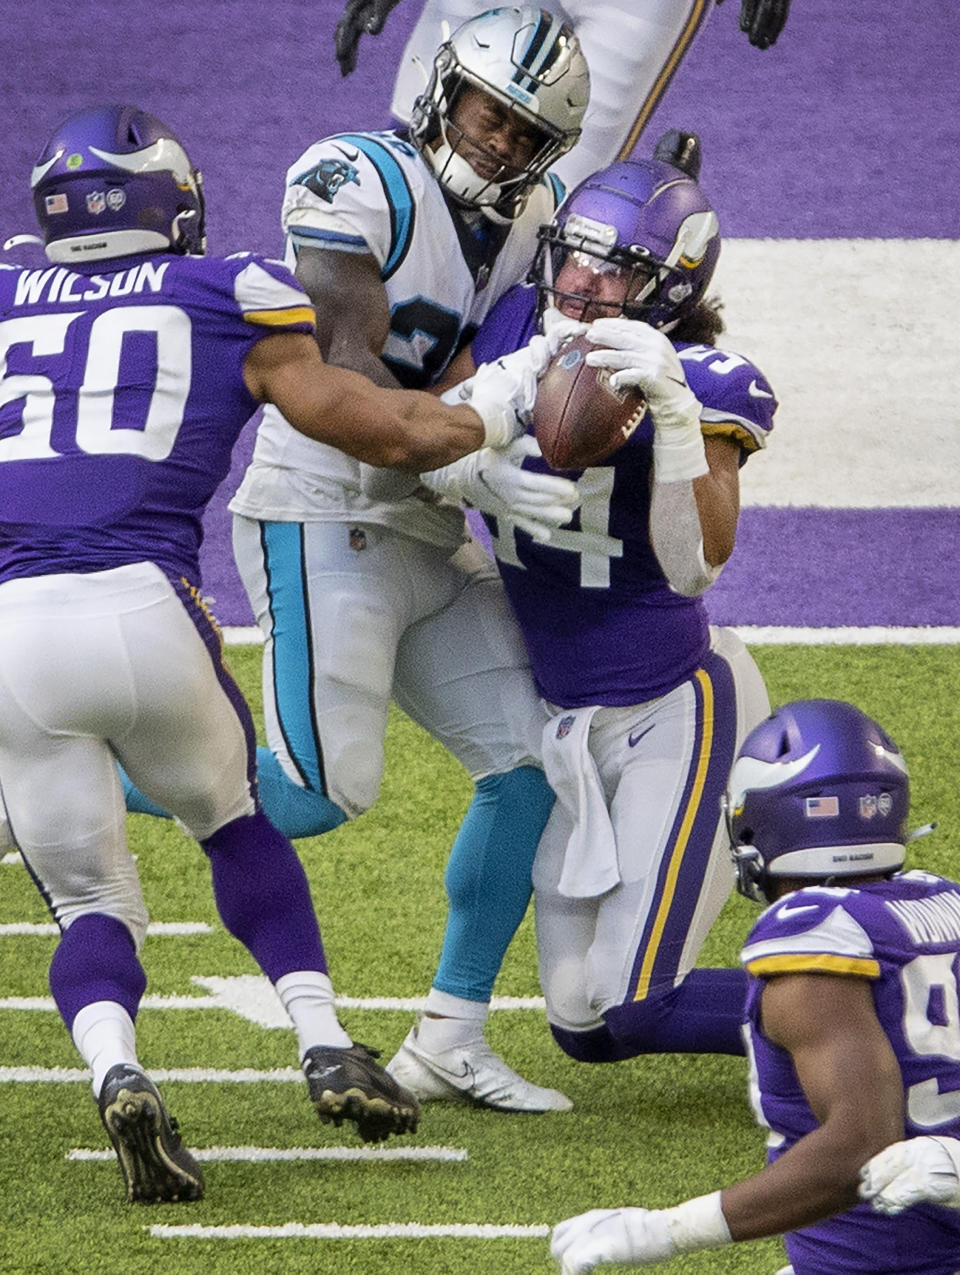 Minnesota Vikings linebacker Eric Kendricks (54) intercepts a pass from Carolina Panthers quarterback Teddy Bridgewater (not shown) in the second quarter of an NFL football game in Minneapolis, Sunday, Nov. 29, 2020. (Carlos Gonzalez/Star Tribune via AP)